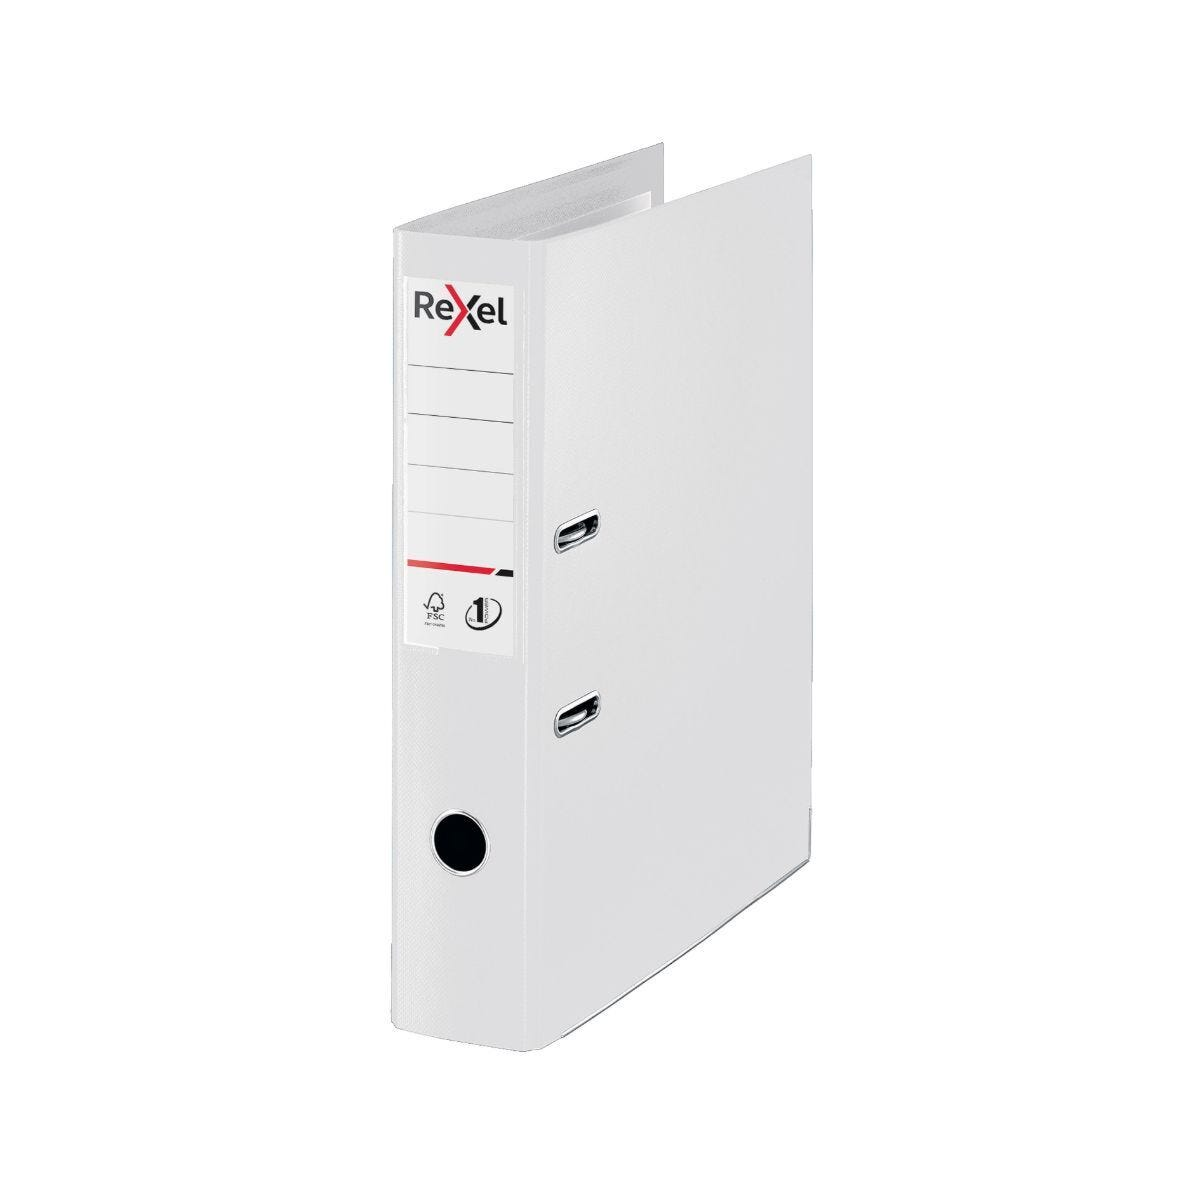 Rexel Choices Lever Arch File Foolscap PP 75mm Pack of 10 White